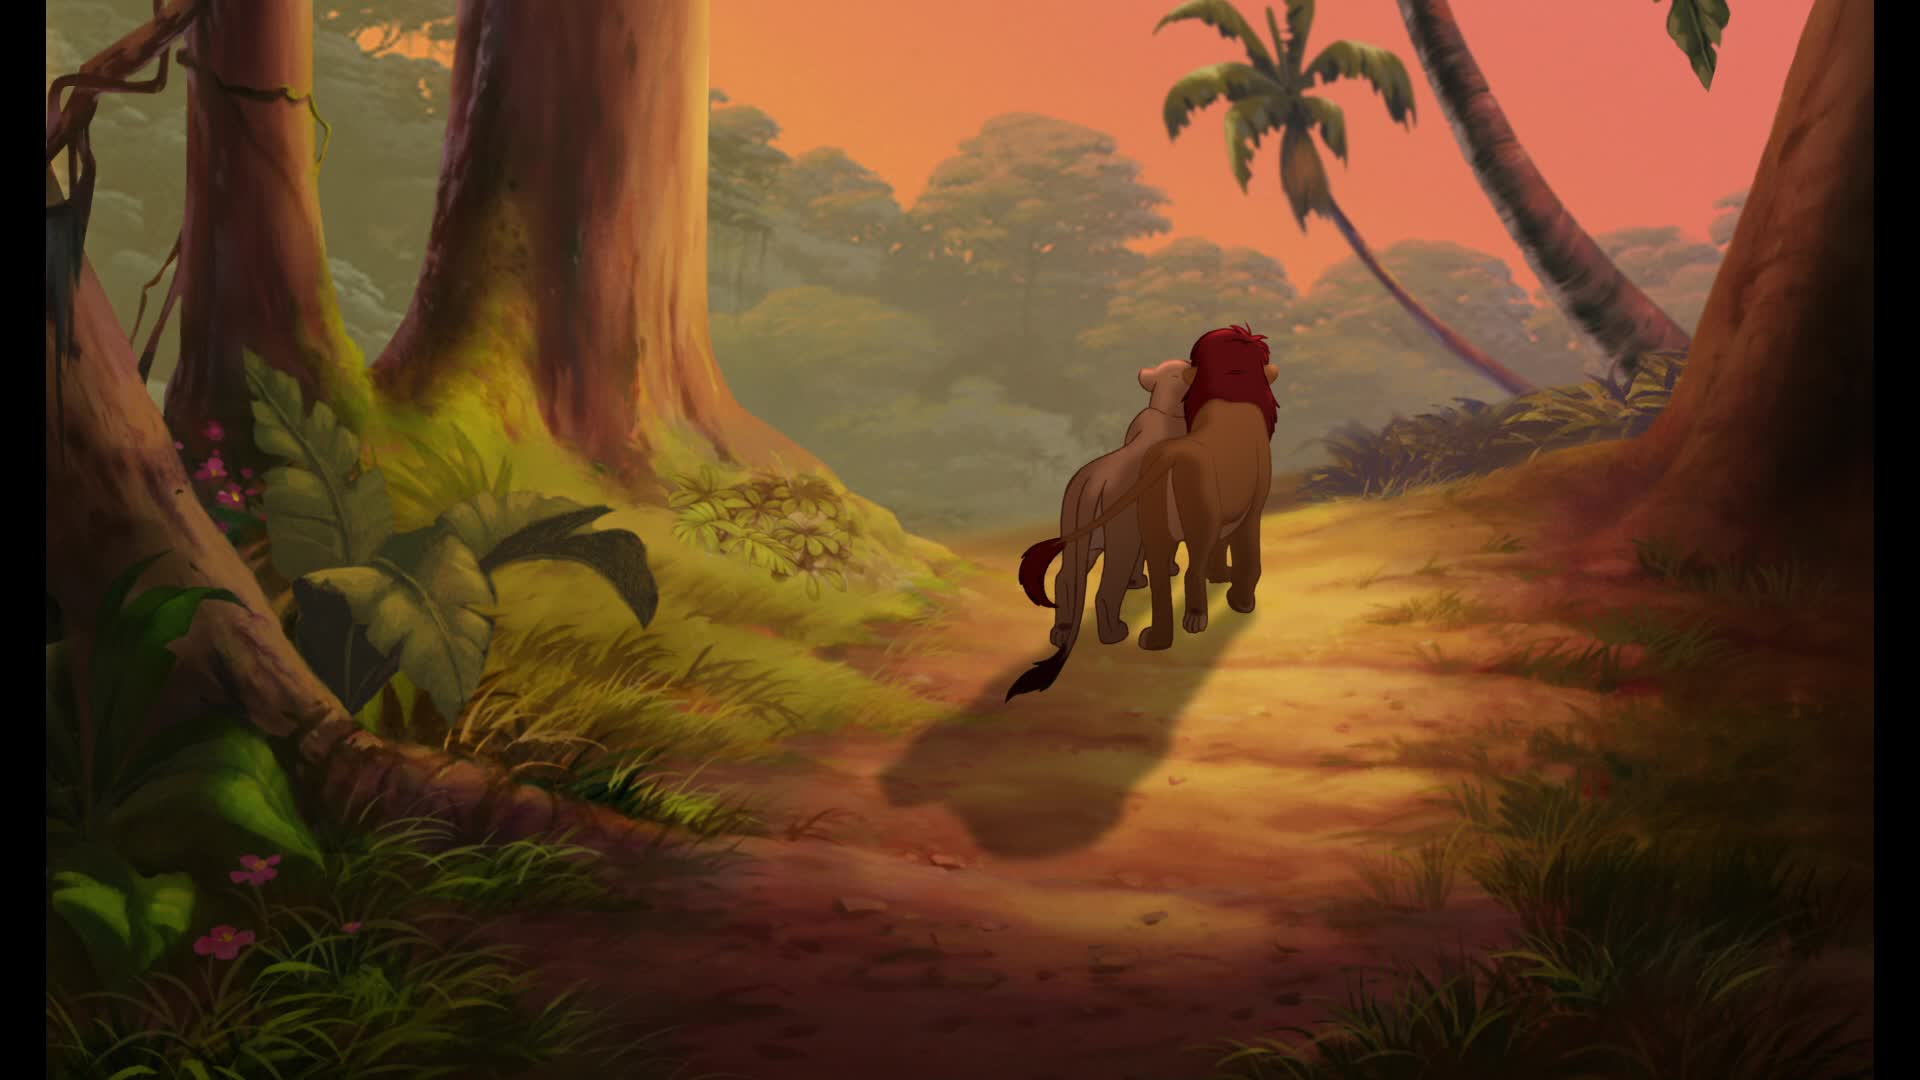 the lion king 1 1  2   hakuna matata gallery of screen captures